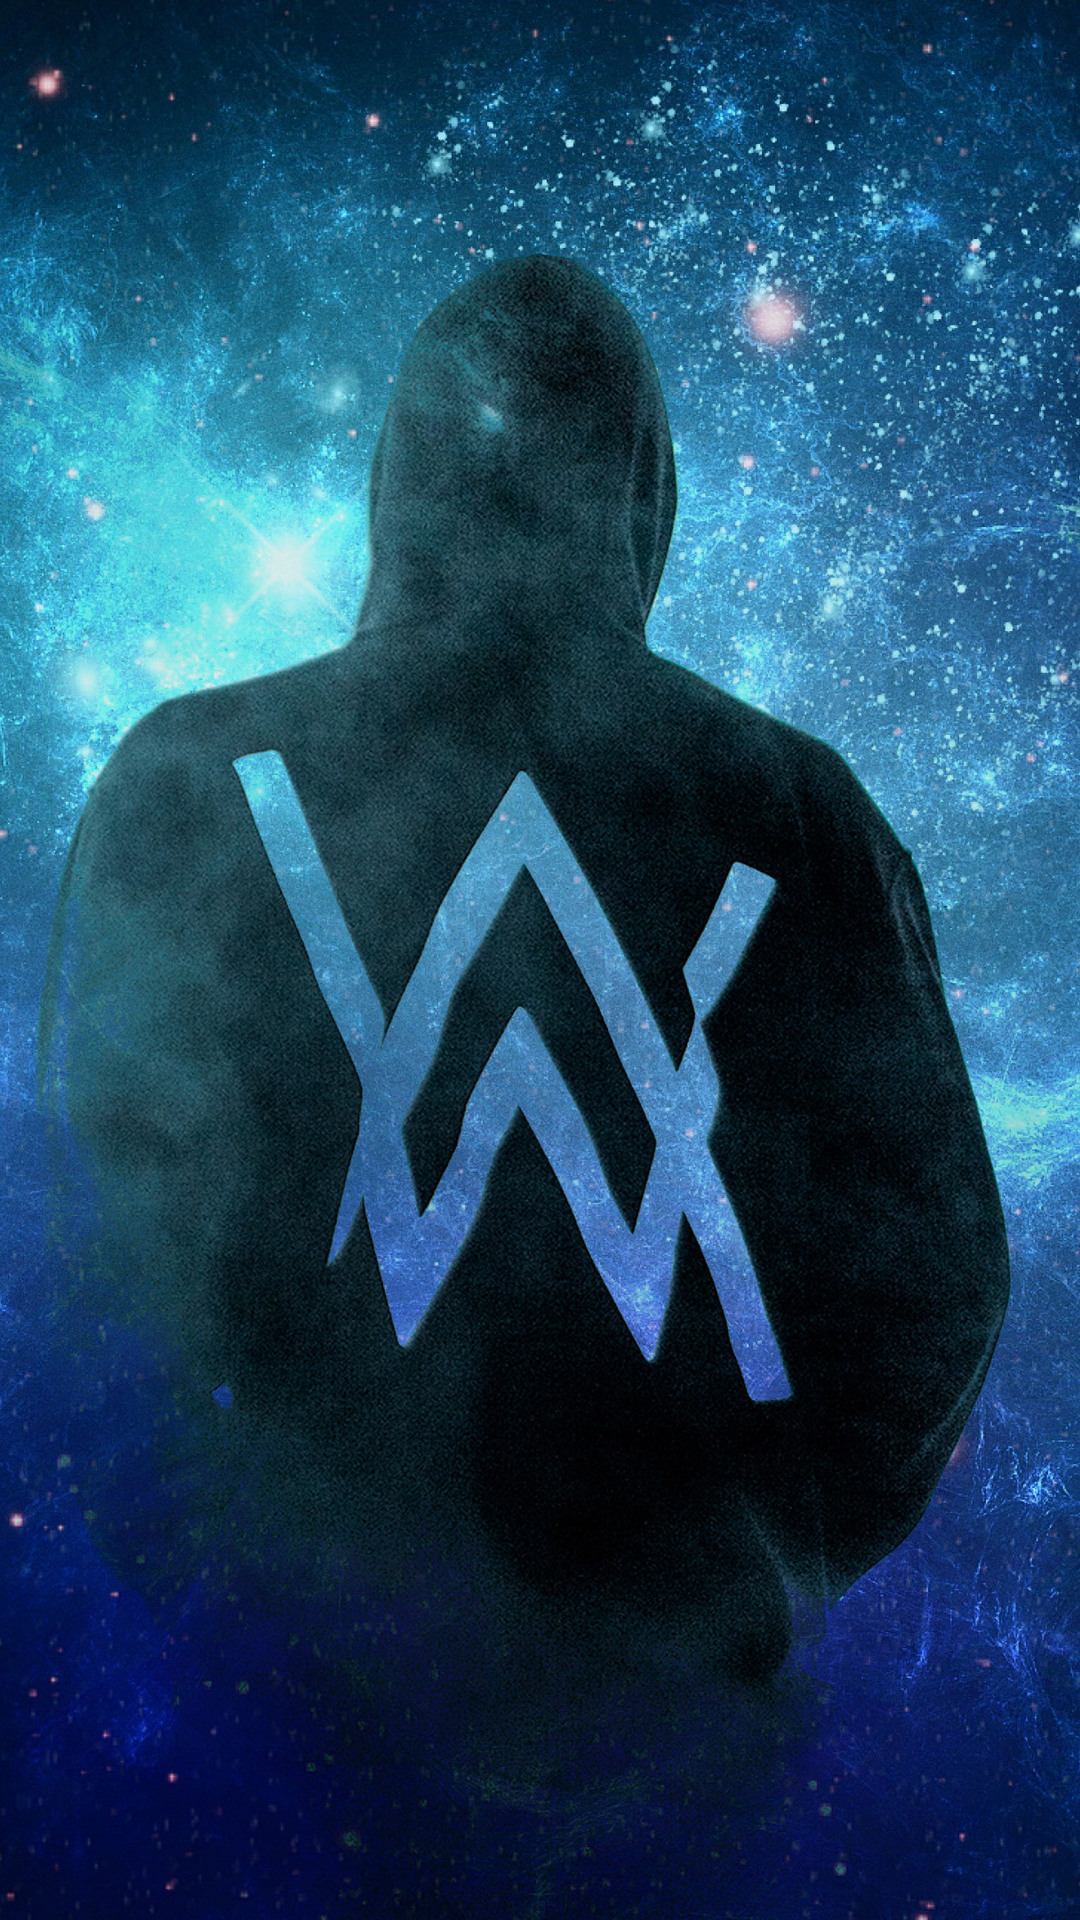 1080x1920 alan walker iphone 7 6s 6 plus  pixel xl  one plus 3 3t 5 hd 4k wallpapers  images